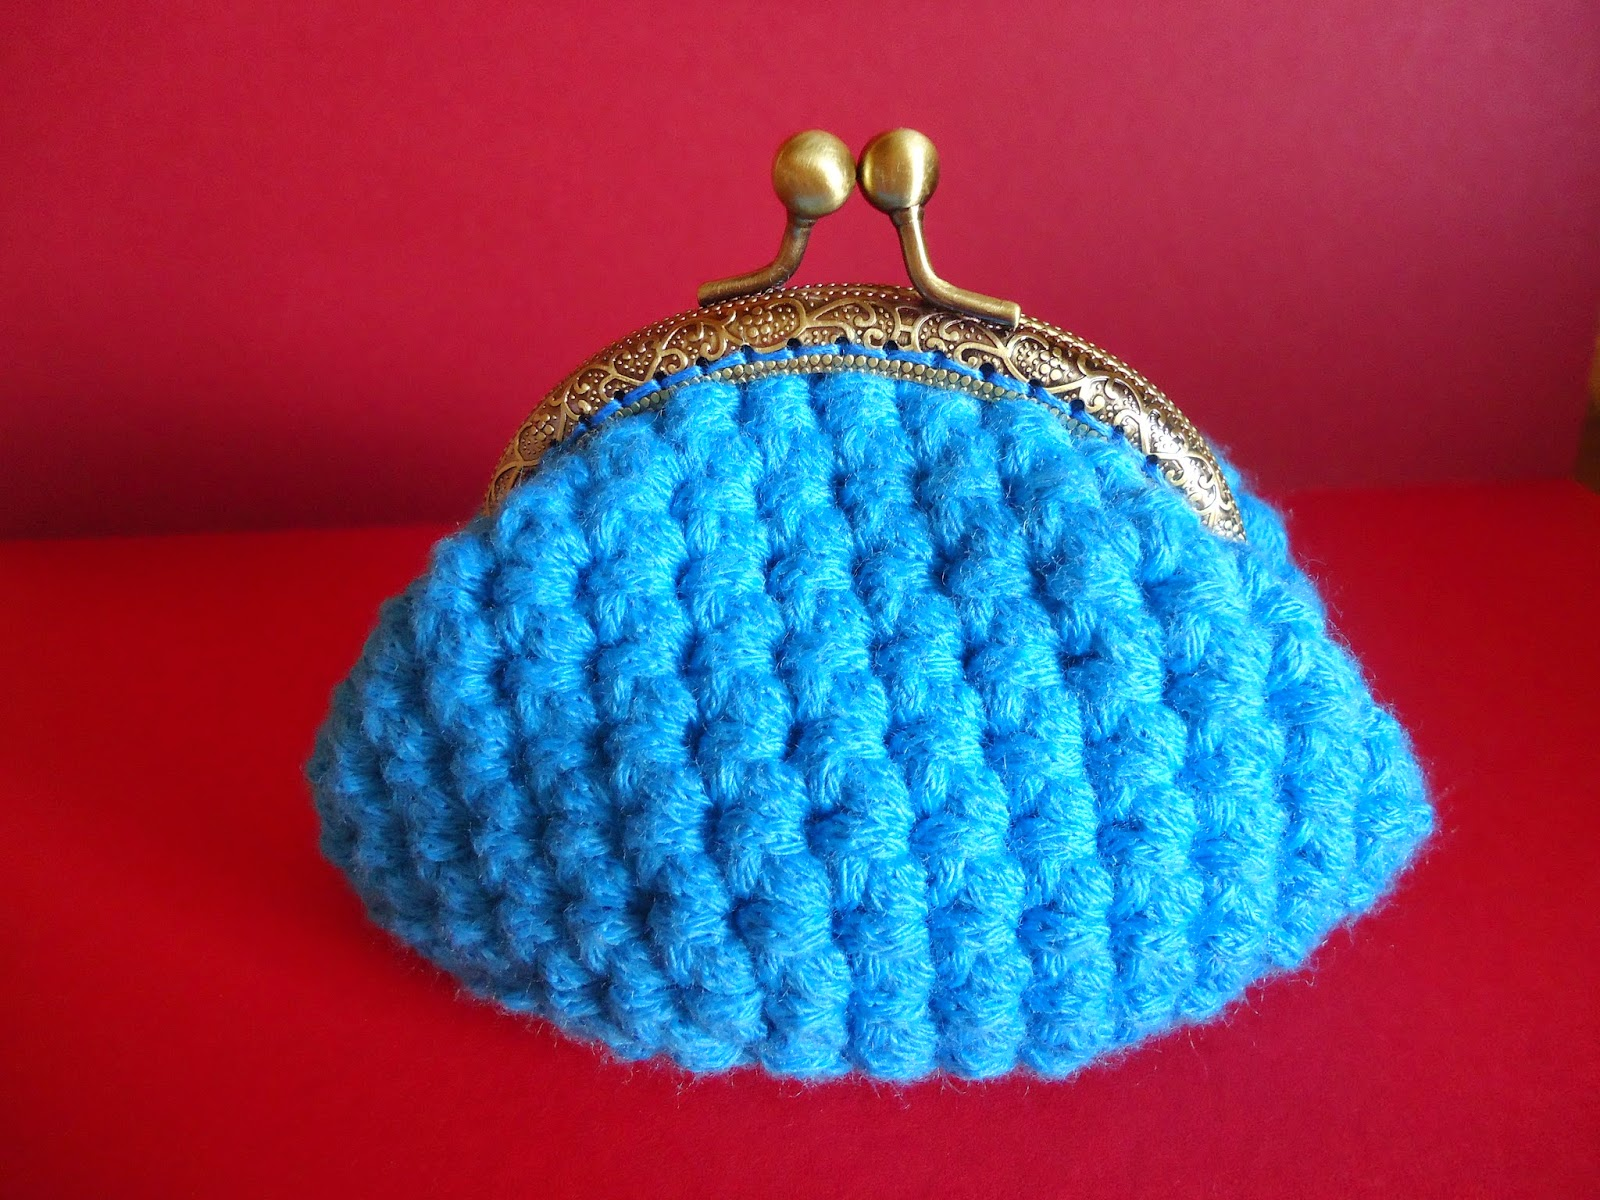 Monedero a crochet con boquilla - Crochet purse - Handbox Craft ...